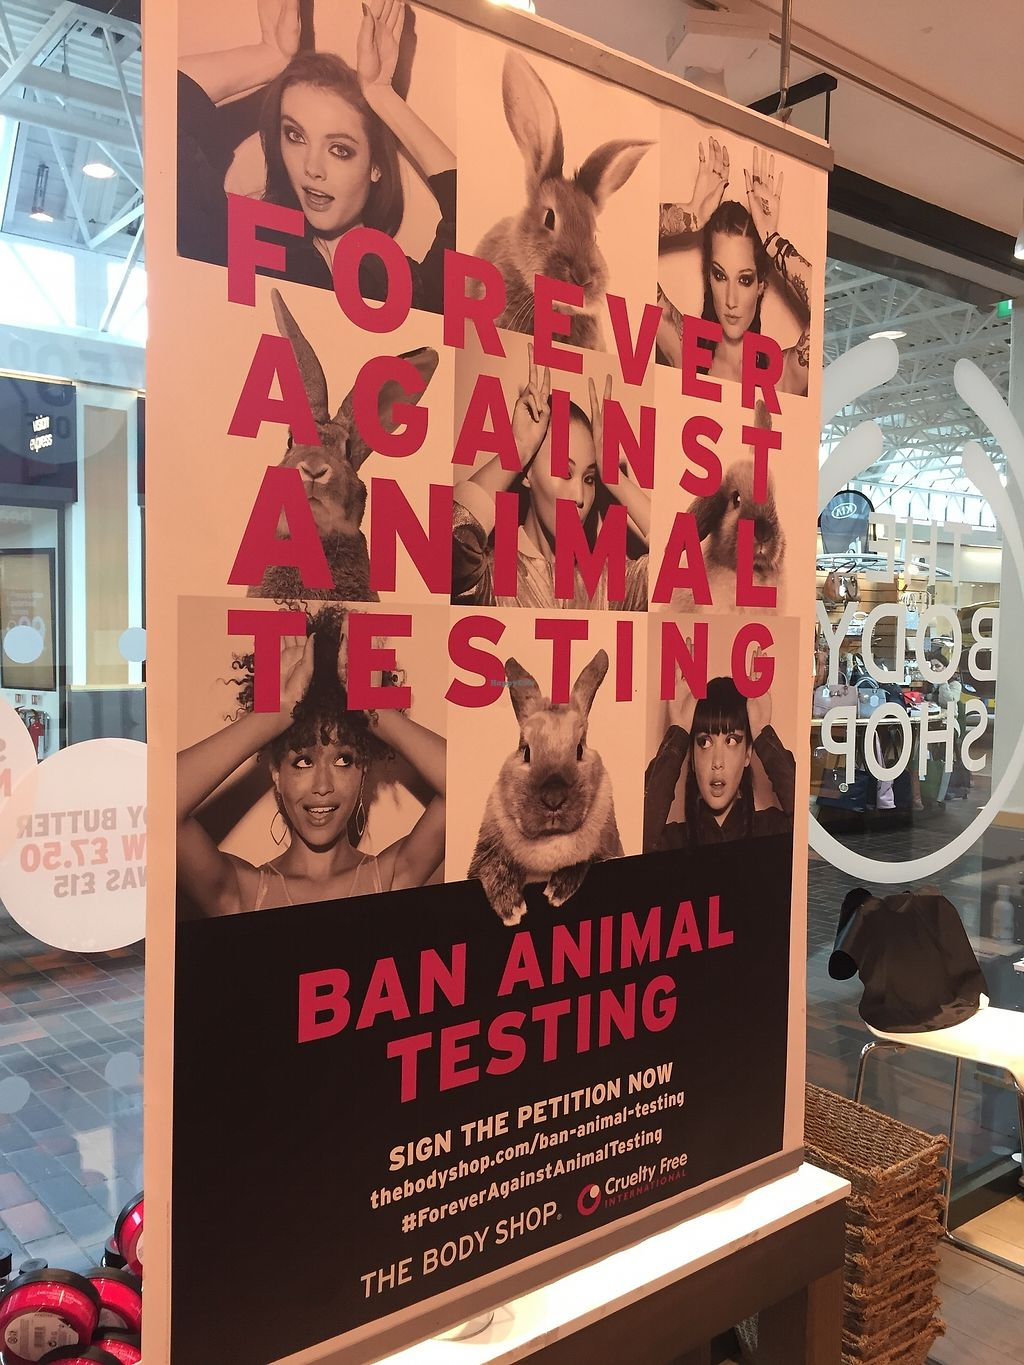 """Photo of The Body Shop  by <a href=""""/members/profile/TARAMCDONALD"""">TARAMCDONALD</a> <br/>current against Animal testing nationwide campaign <br/> October 24, 2017  - <a href='/contact/abuse/image/97175/318484'>Report</a>"""